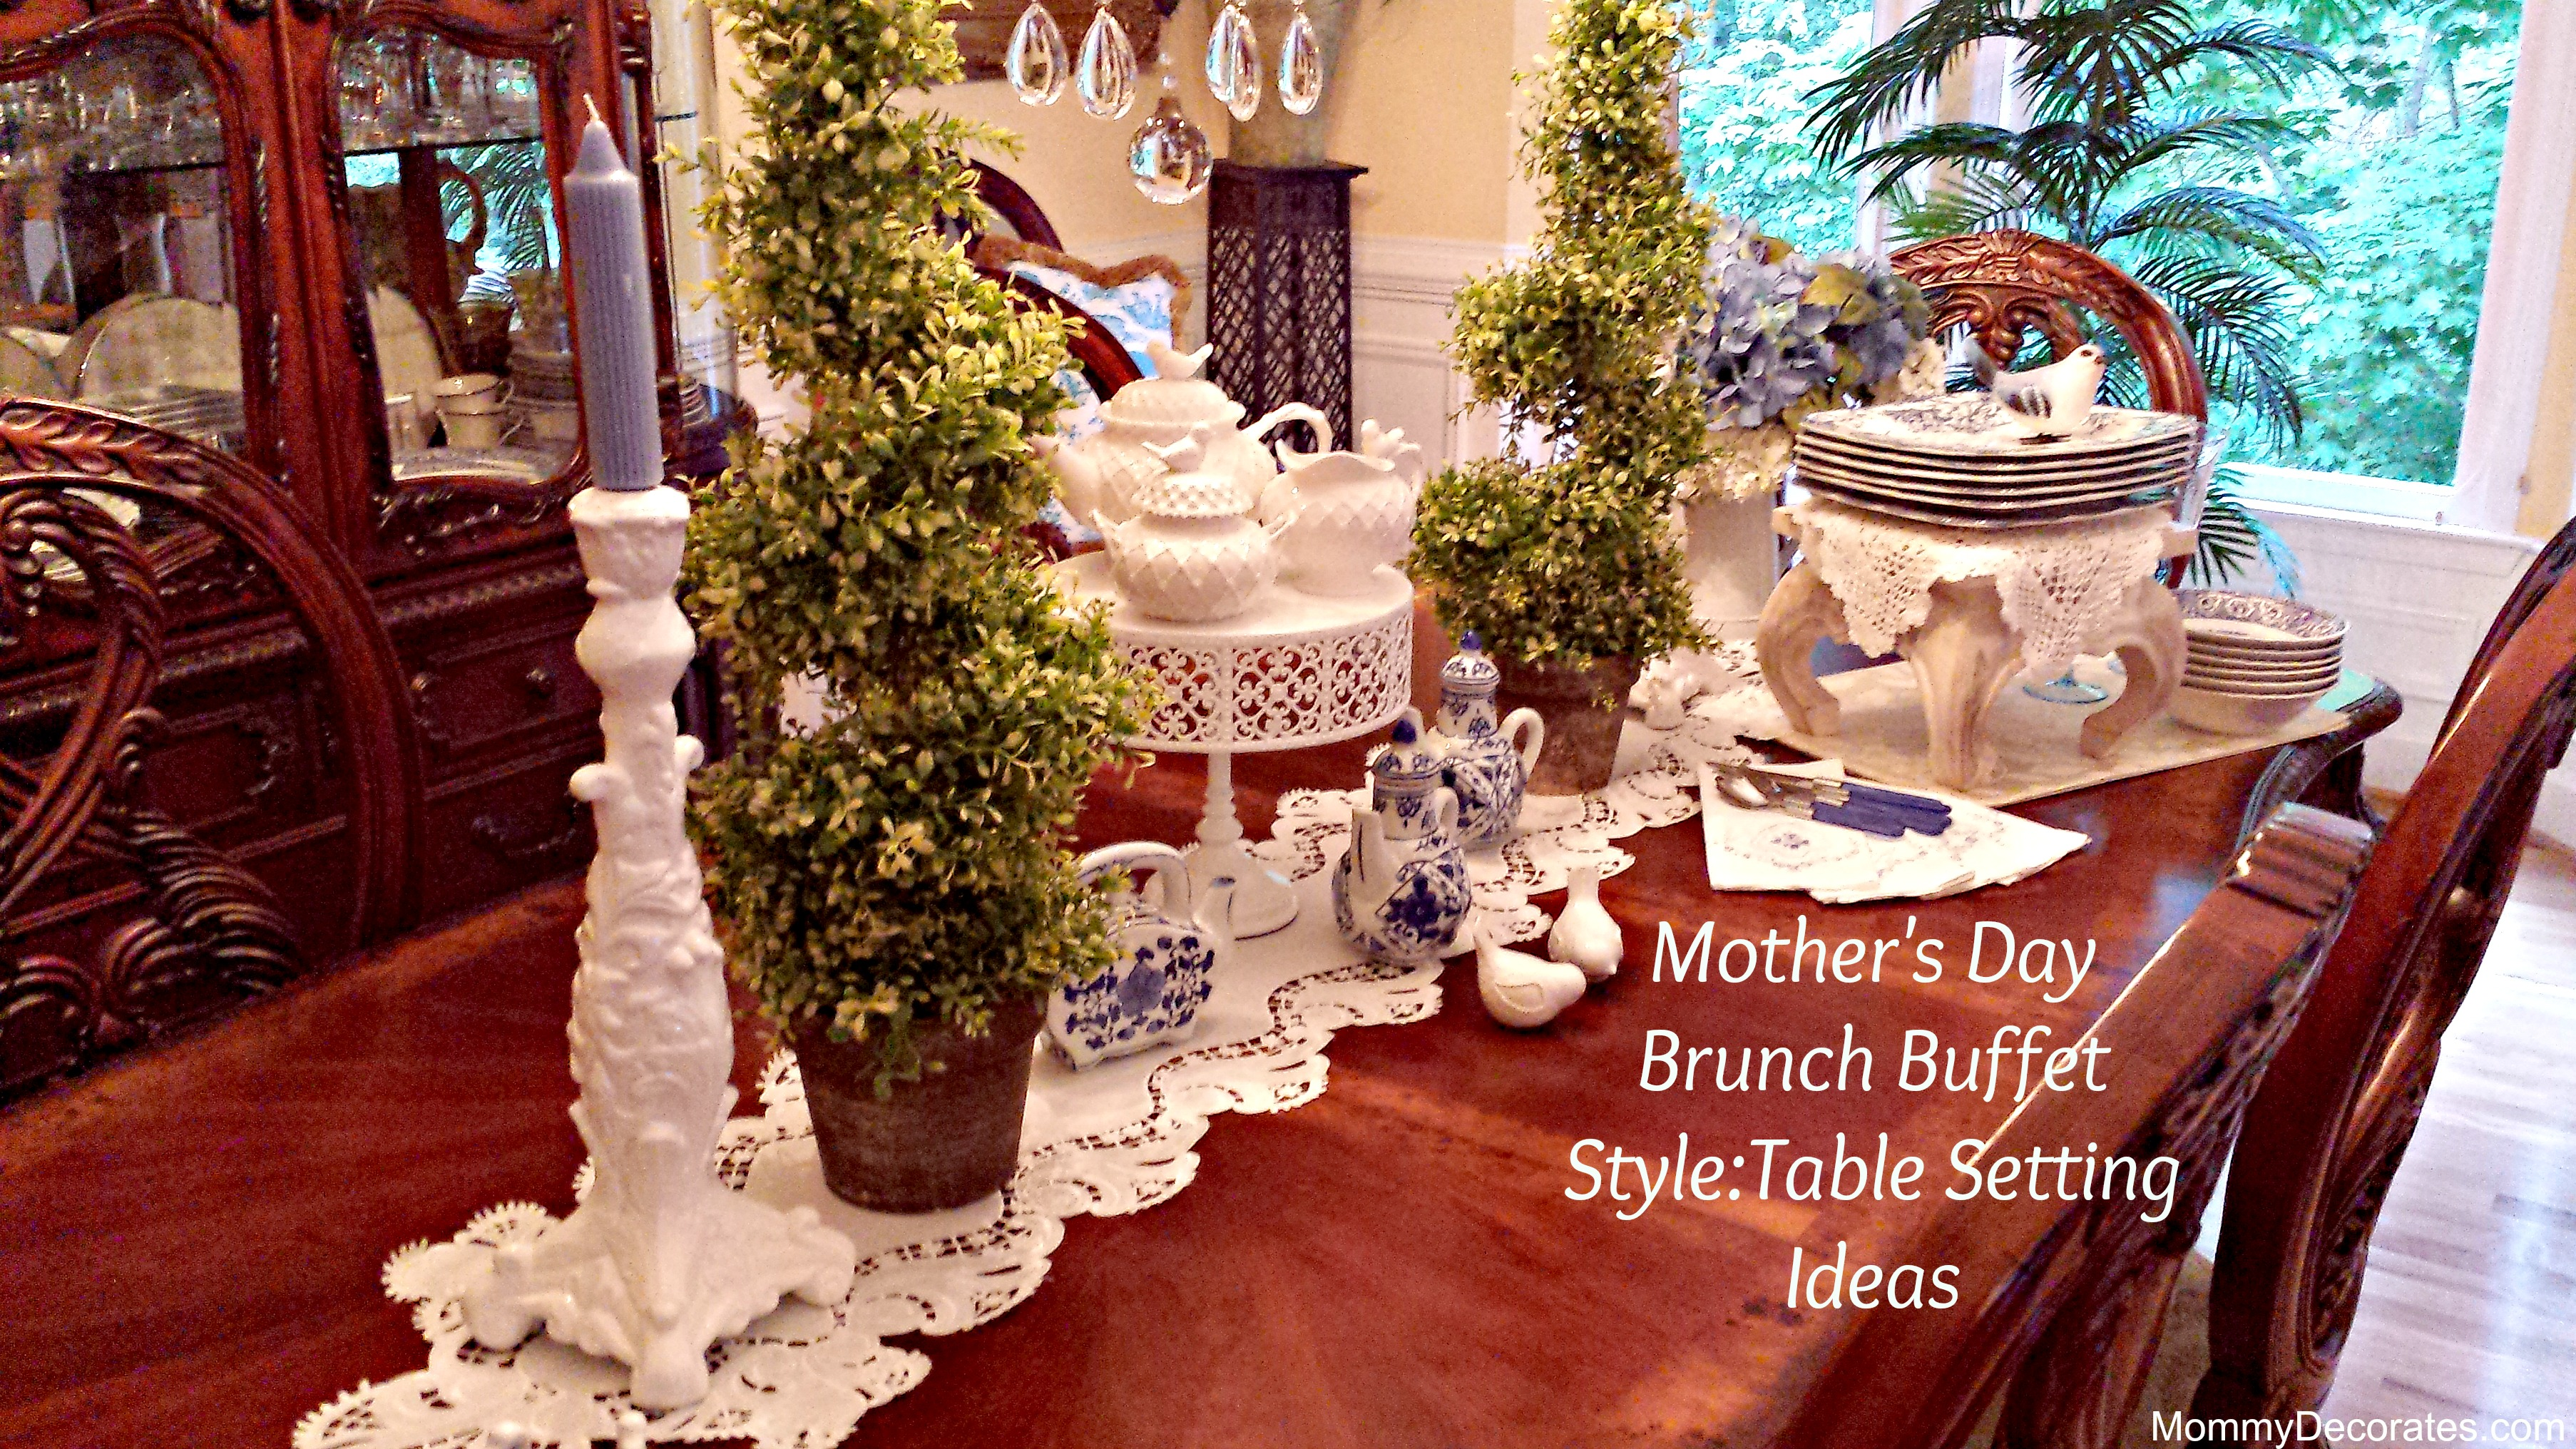 Mother\'s Day Brunch Buffet Style:Table Setting Ideas